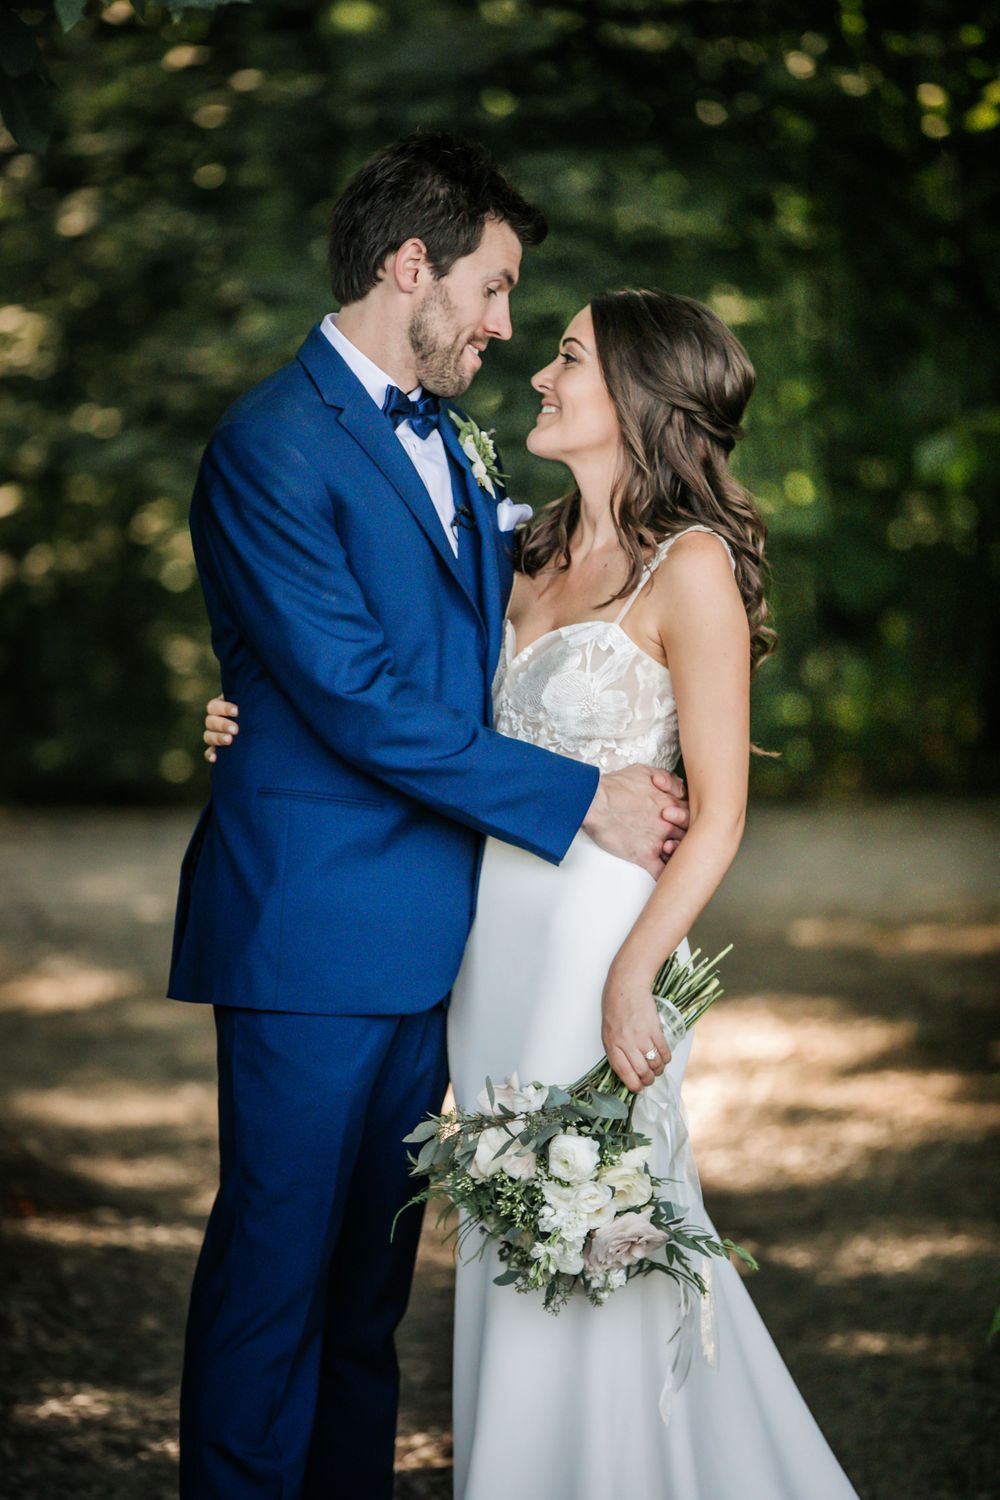 Whistle Bear Golf Club Cambridge Bride and Groom Wedding Photos